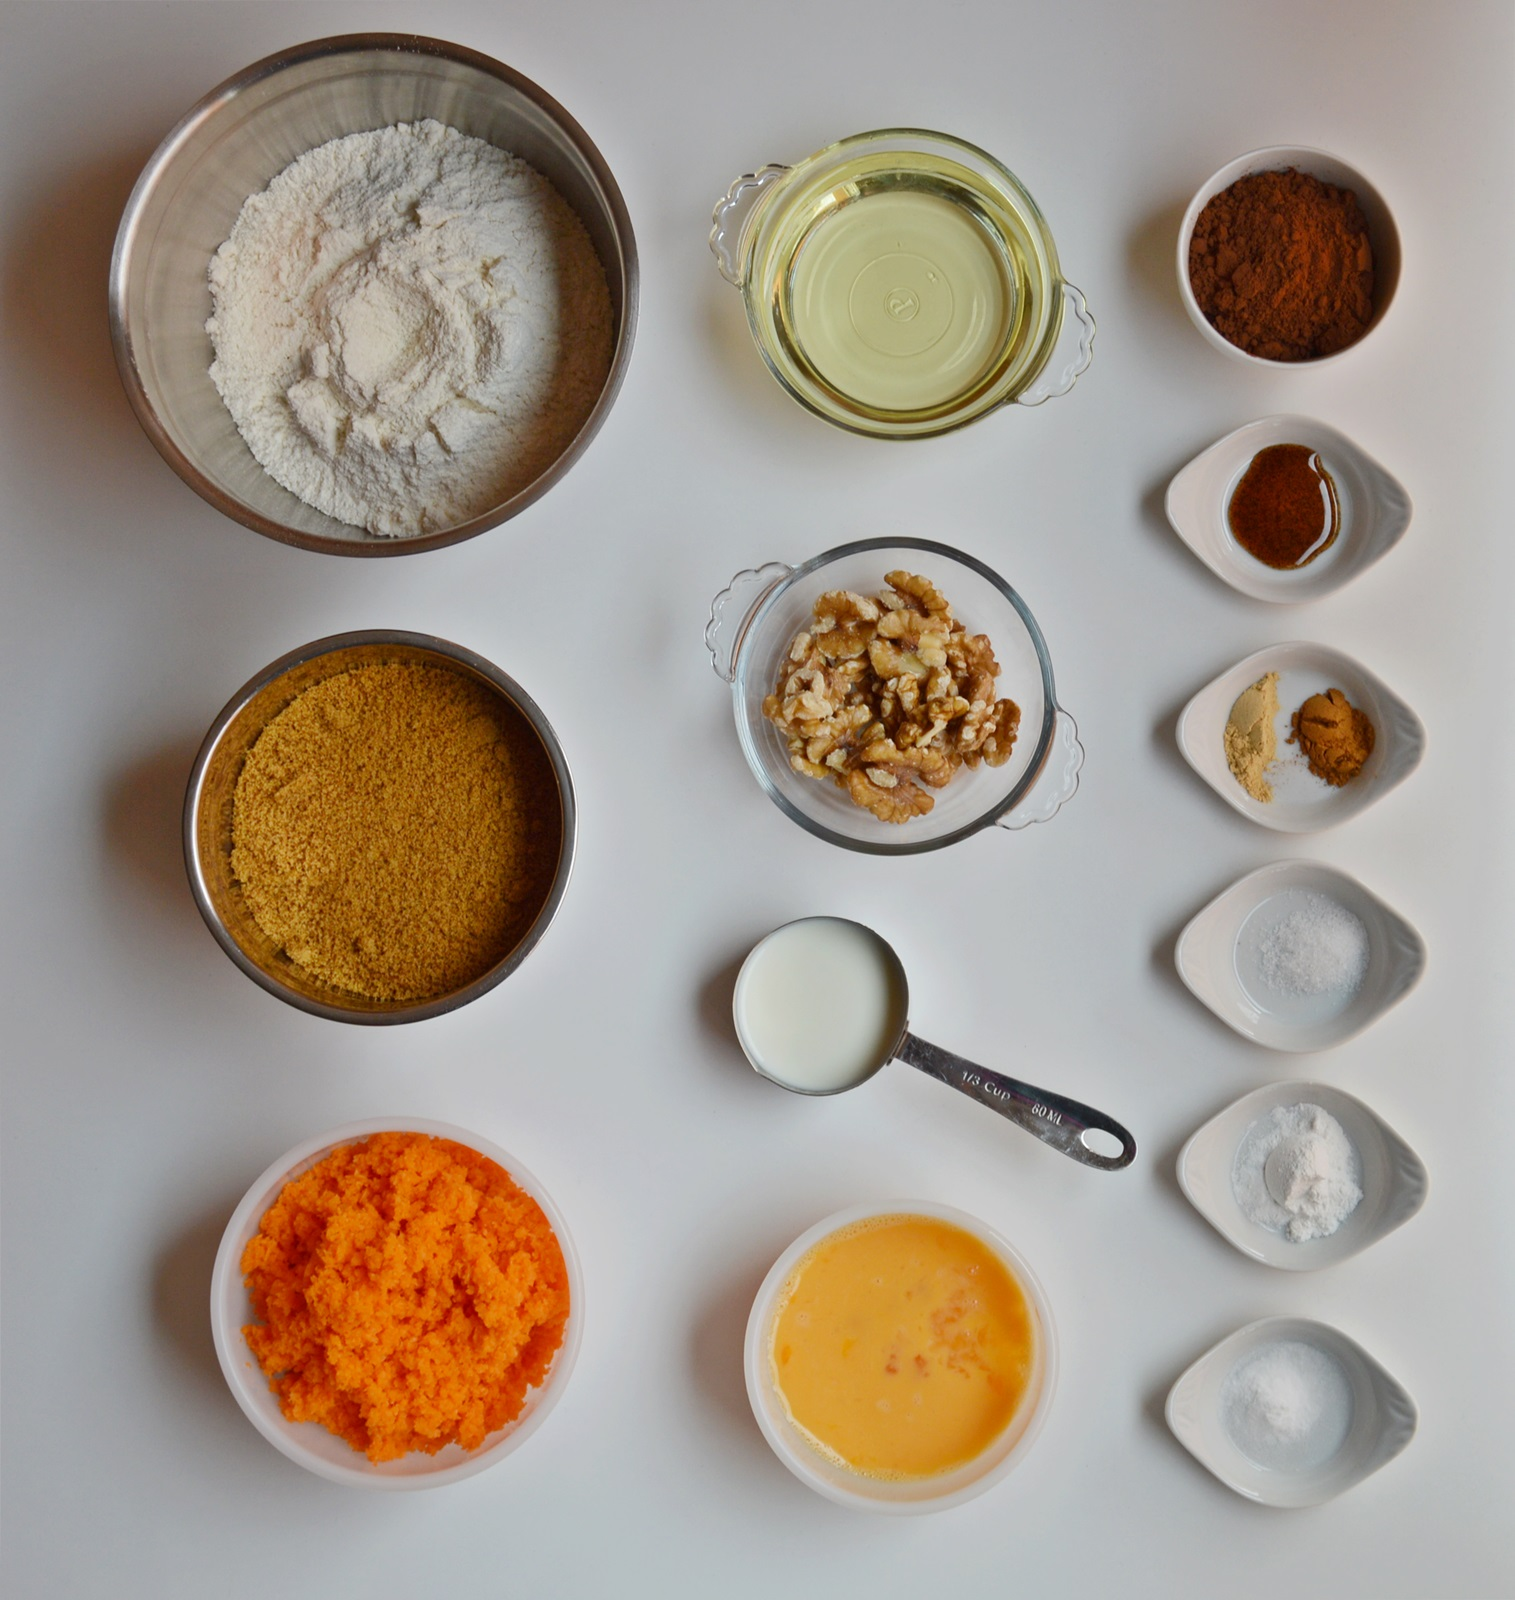 Ingredientes carrot cake chocolateado. Aroma de chocolate